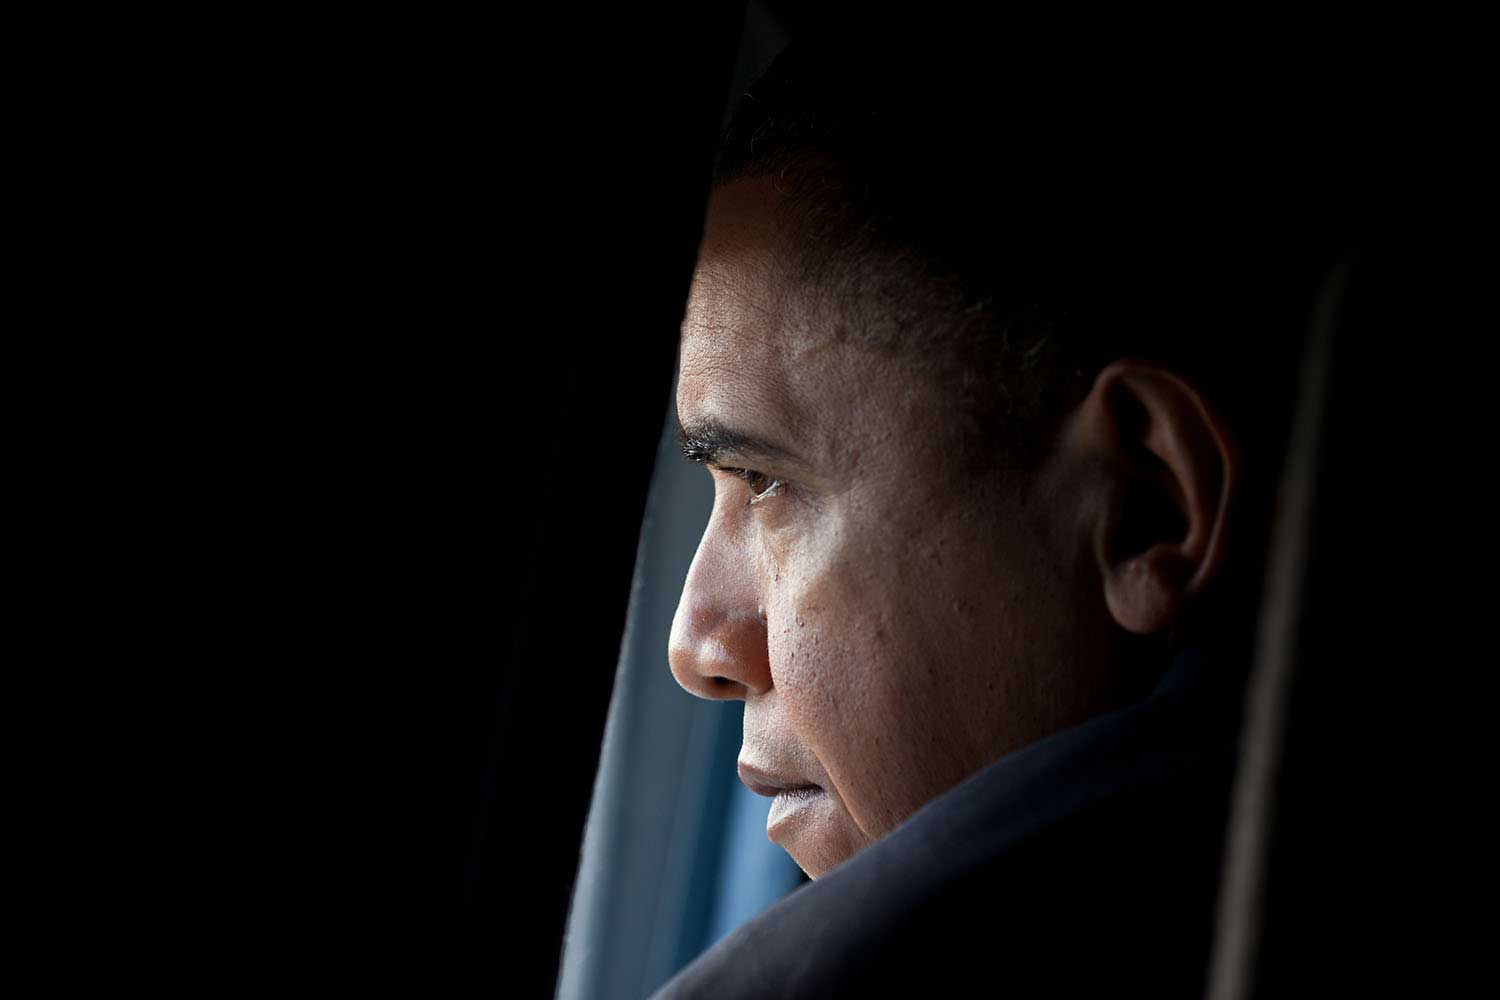 President Obama looks out the window aboard the Marine One helicopter before speaking at Hampton University commencement in Armstrong Stadium, Hampton, Va. May 9, 2010.